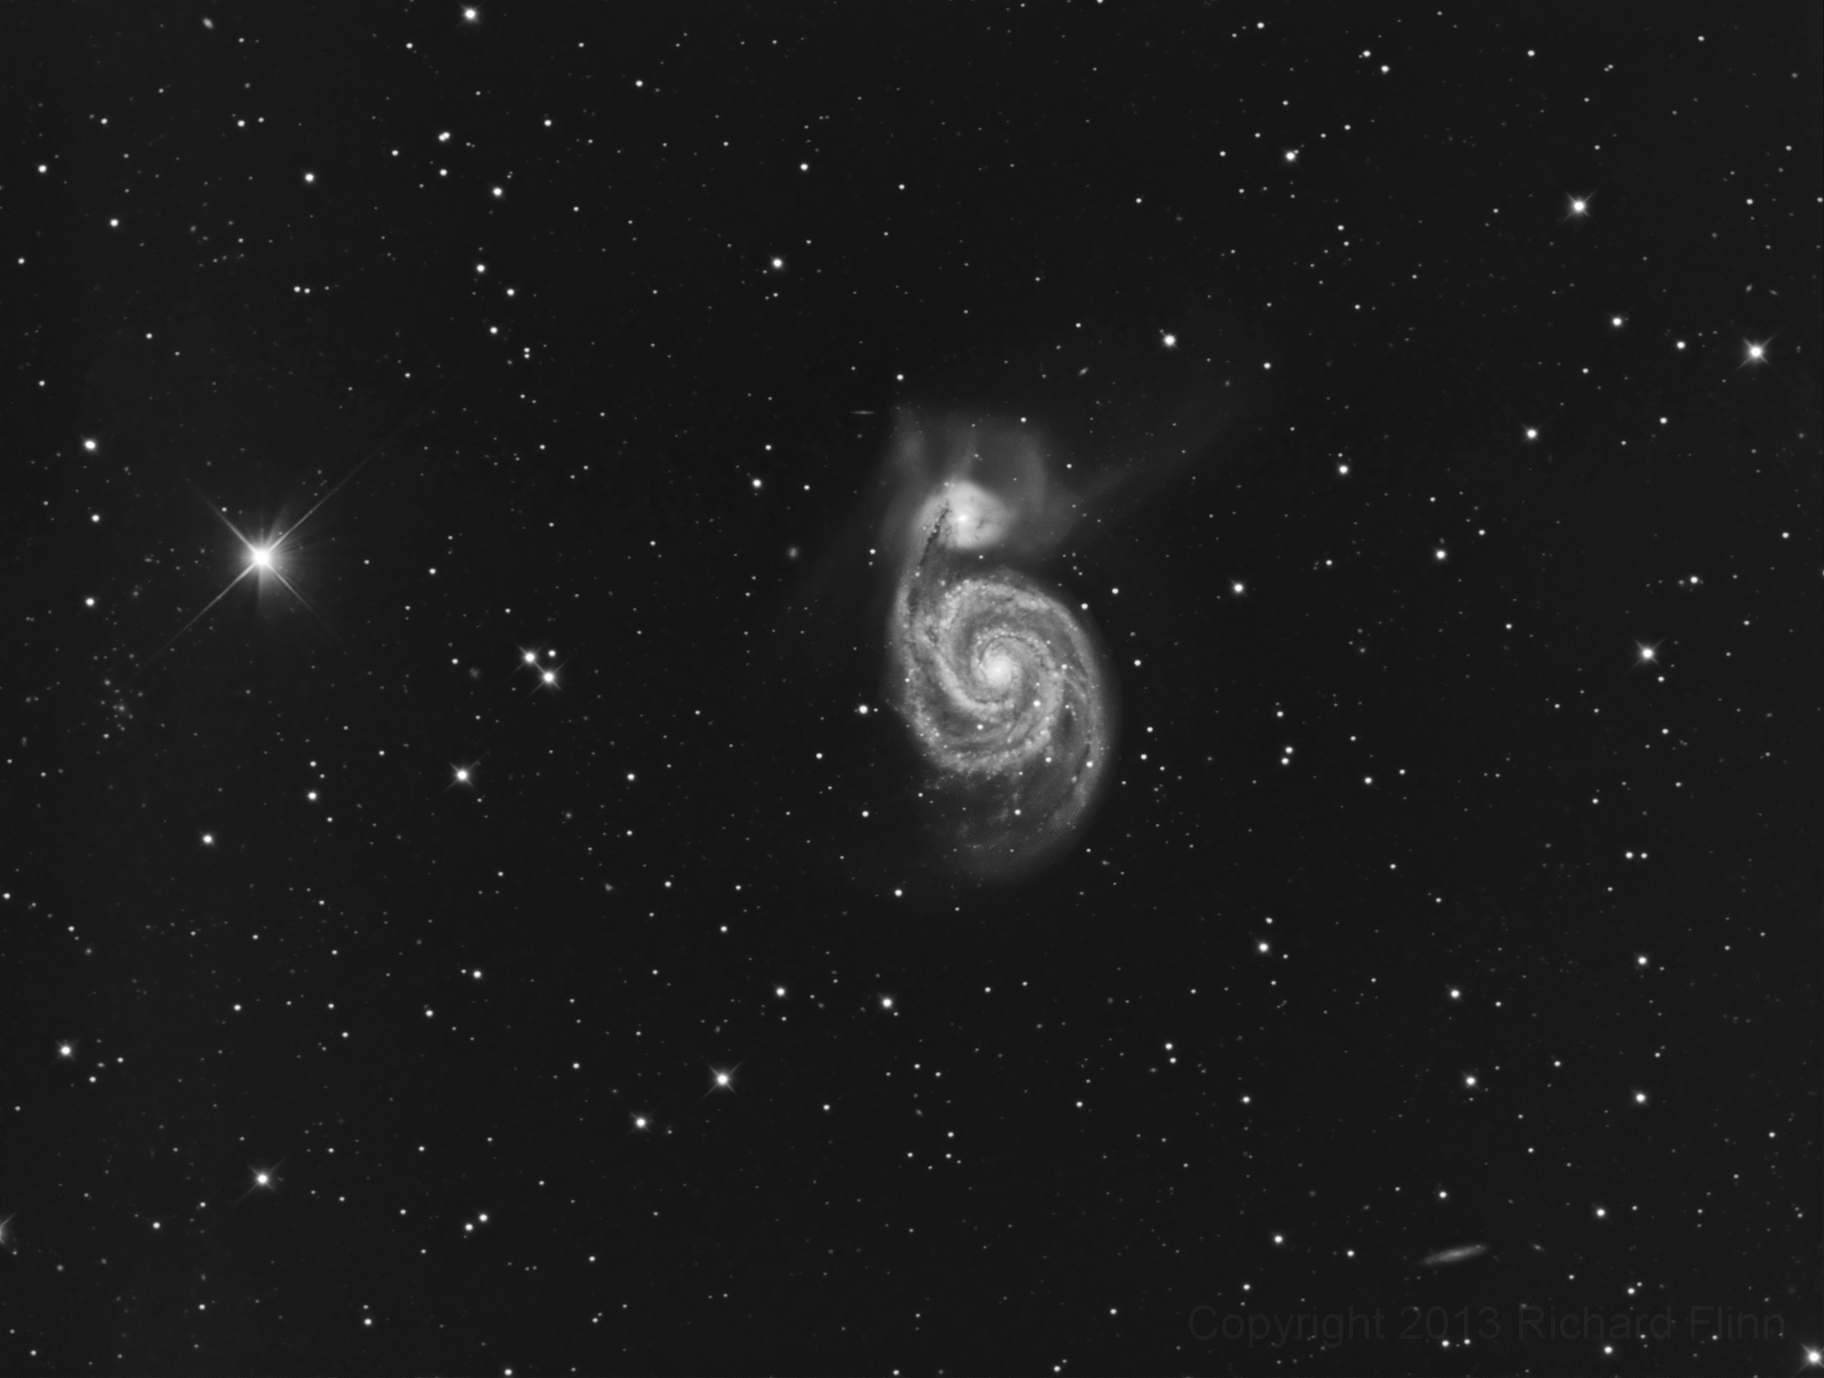 Whirlpool Galaxy (M51 or NGC 5194) - interacting grand-design spiral galaxy in the constellation Canes Venatici. Also includes: dwarf galaxy NGC 5195 (M51B); low surface brightness galaxy IC 4263.